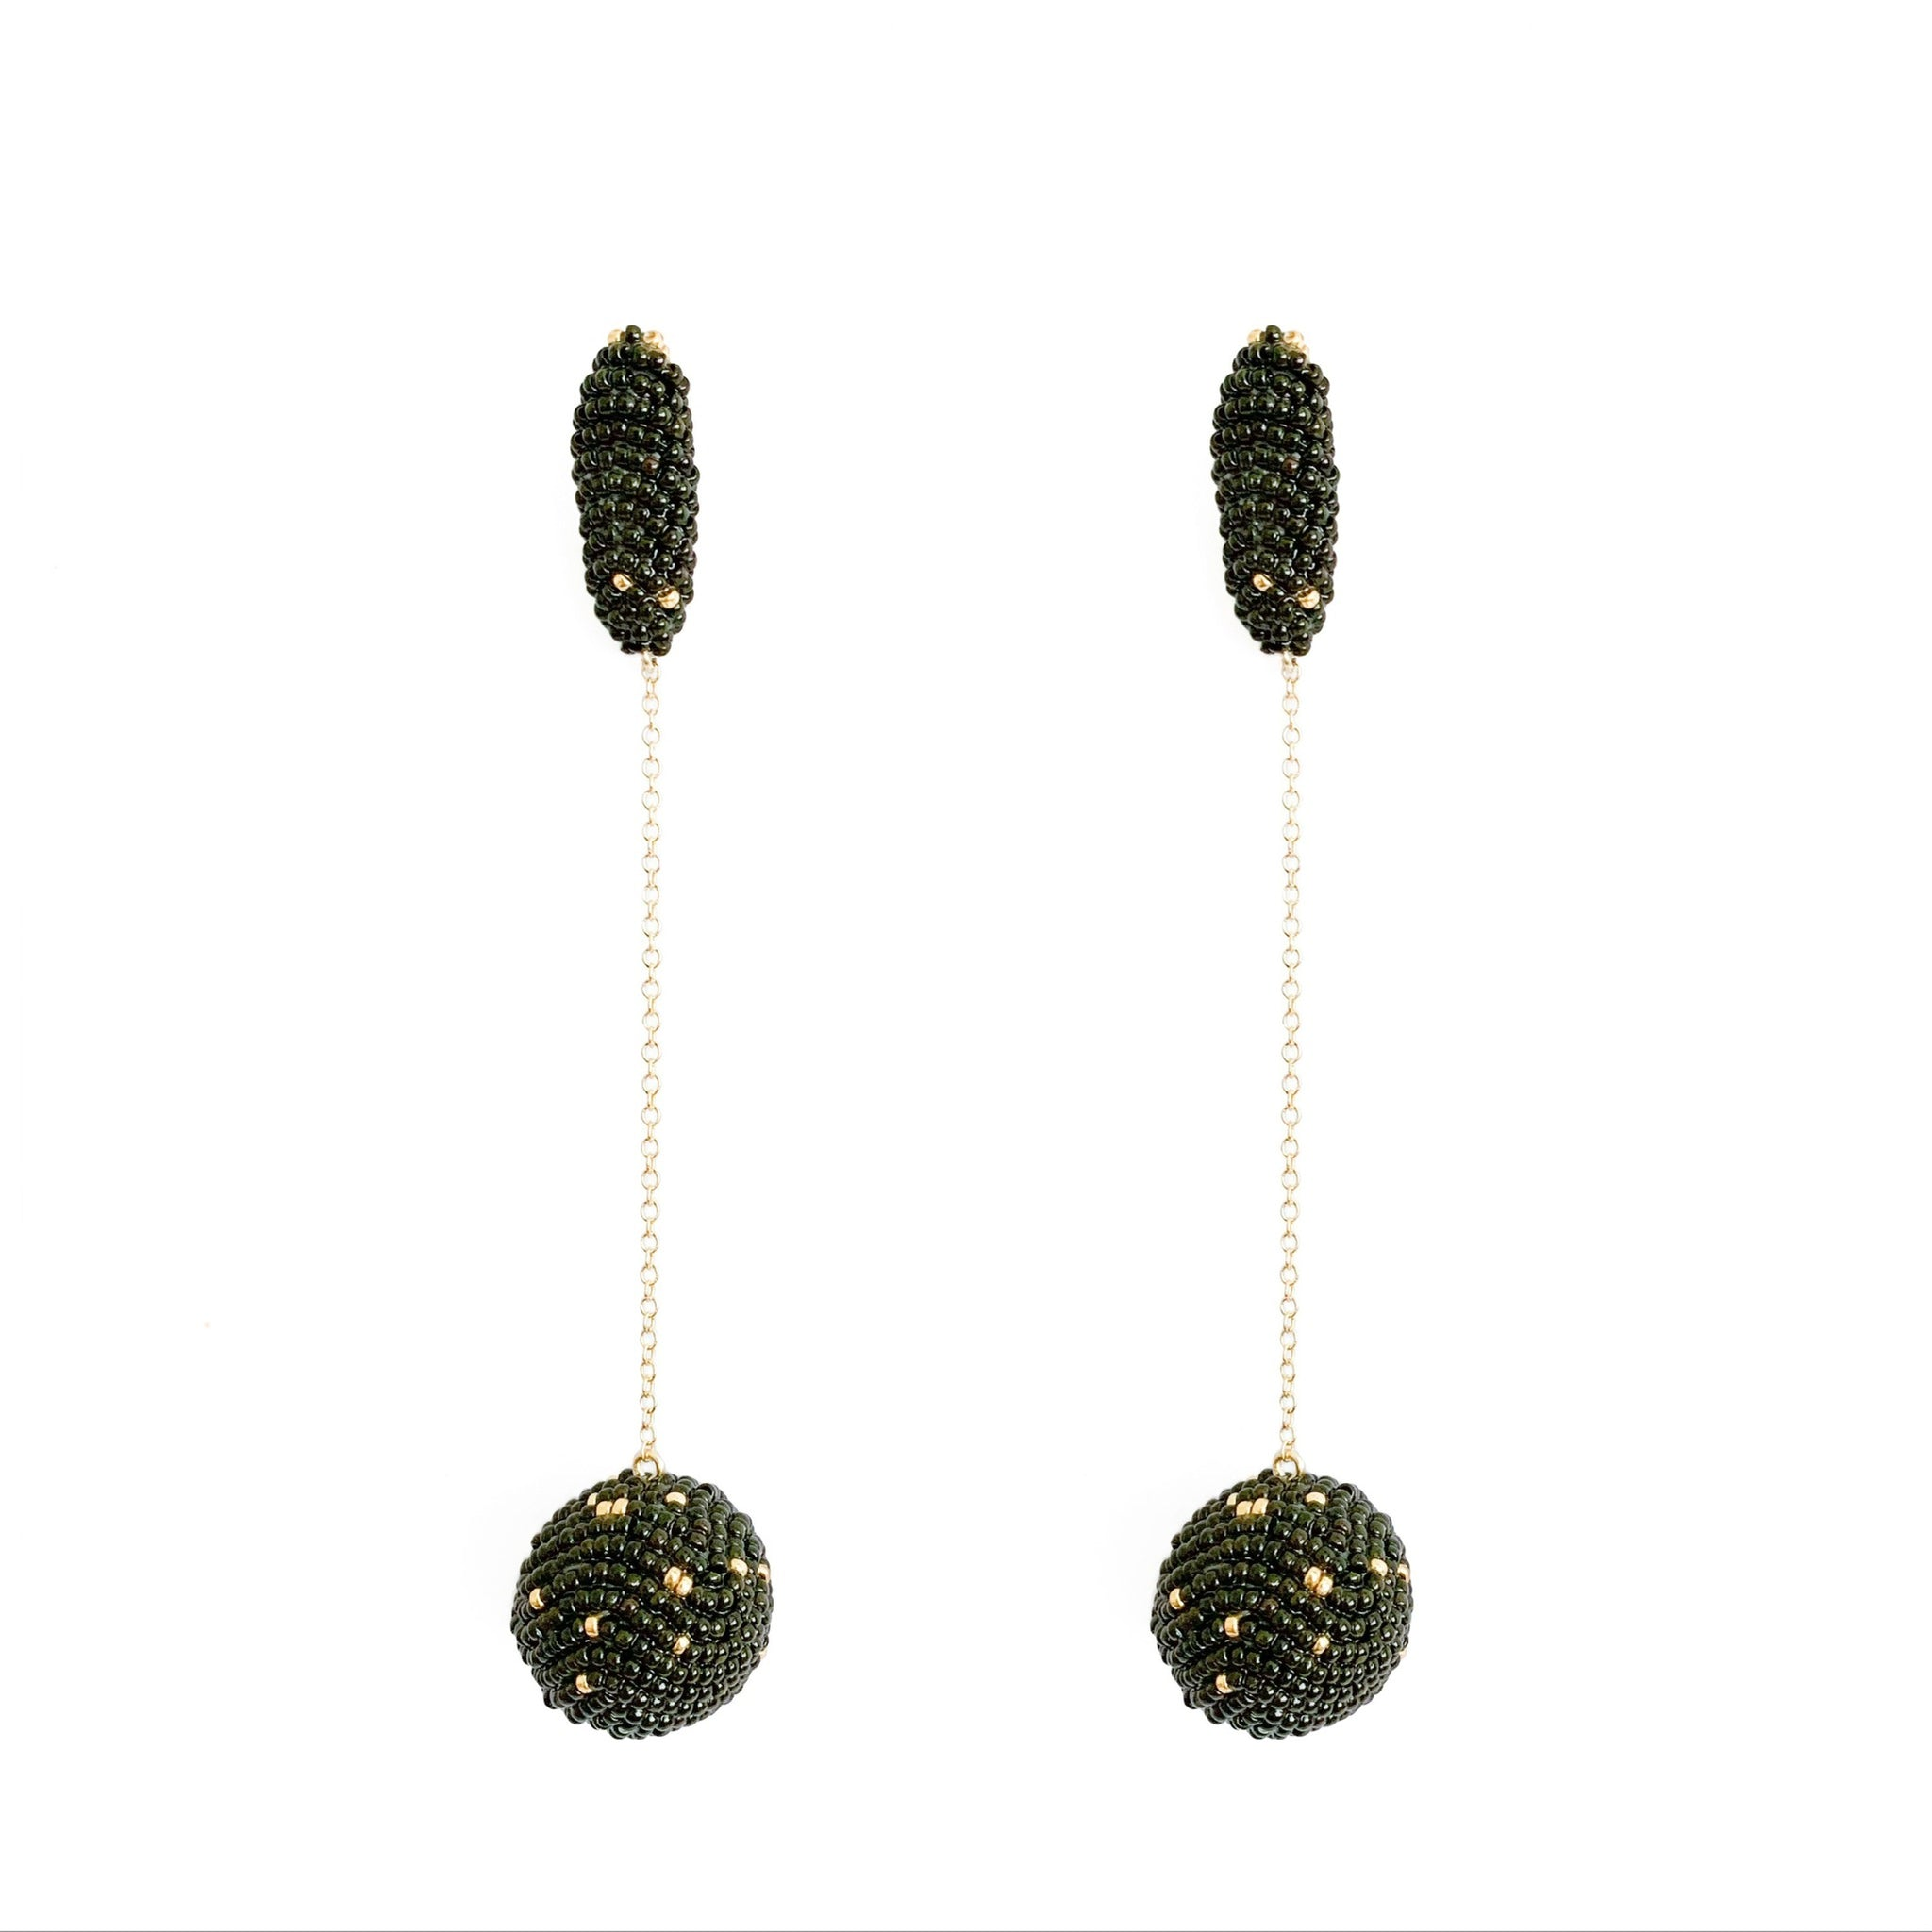 LAO EARRINGS